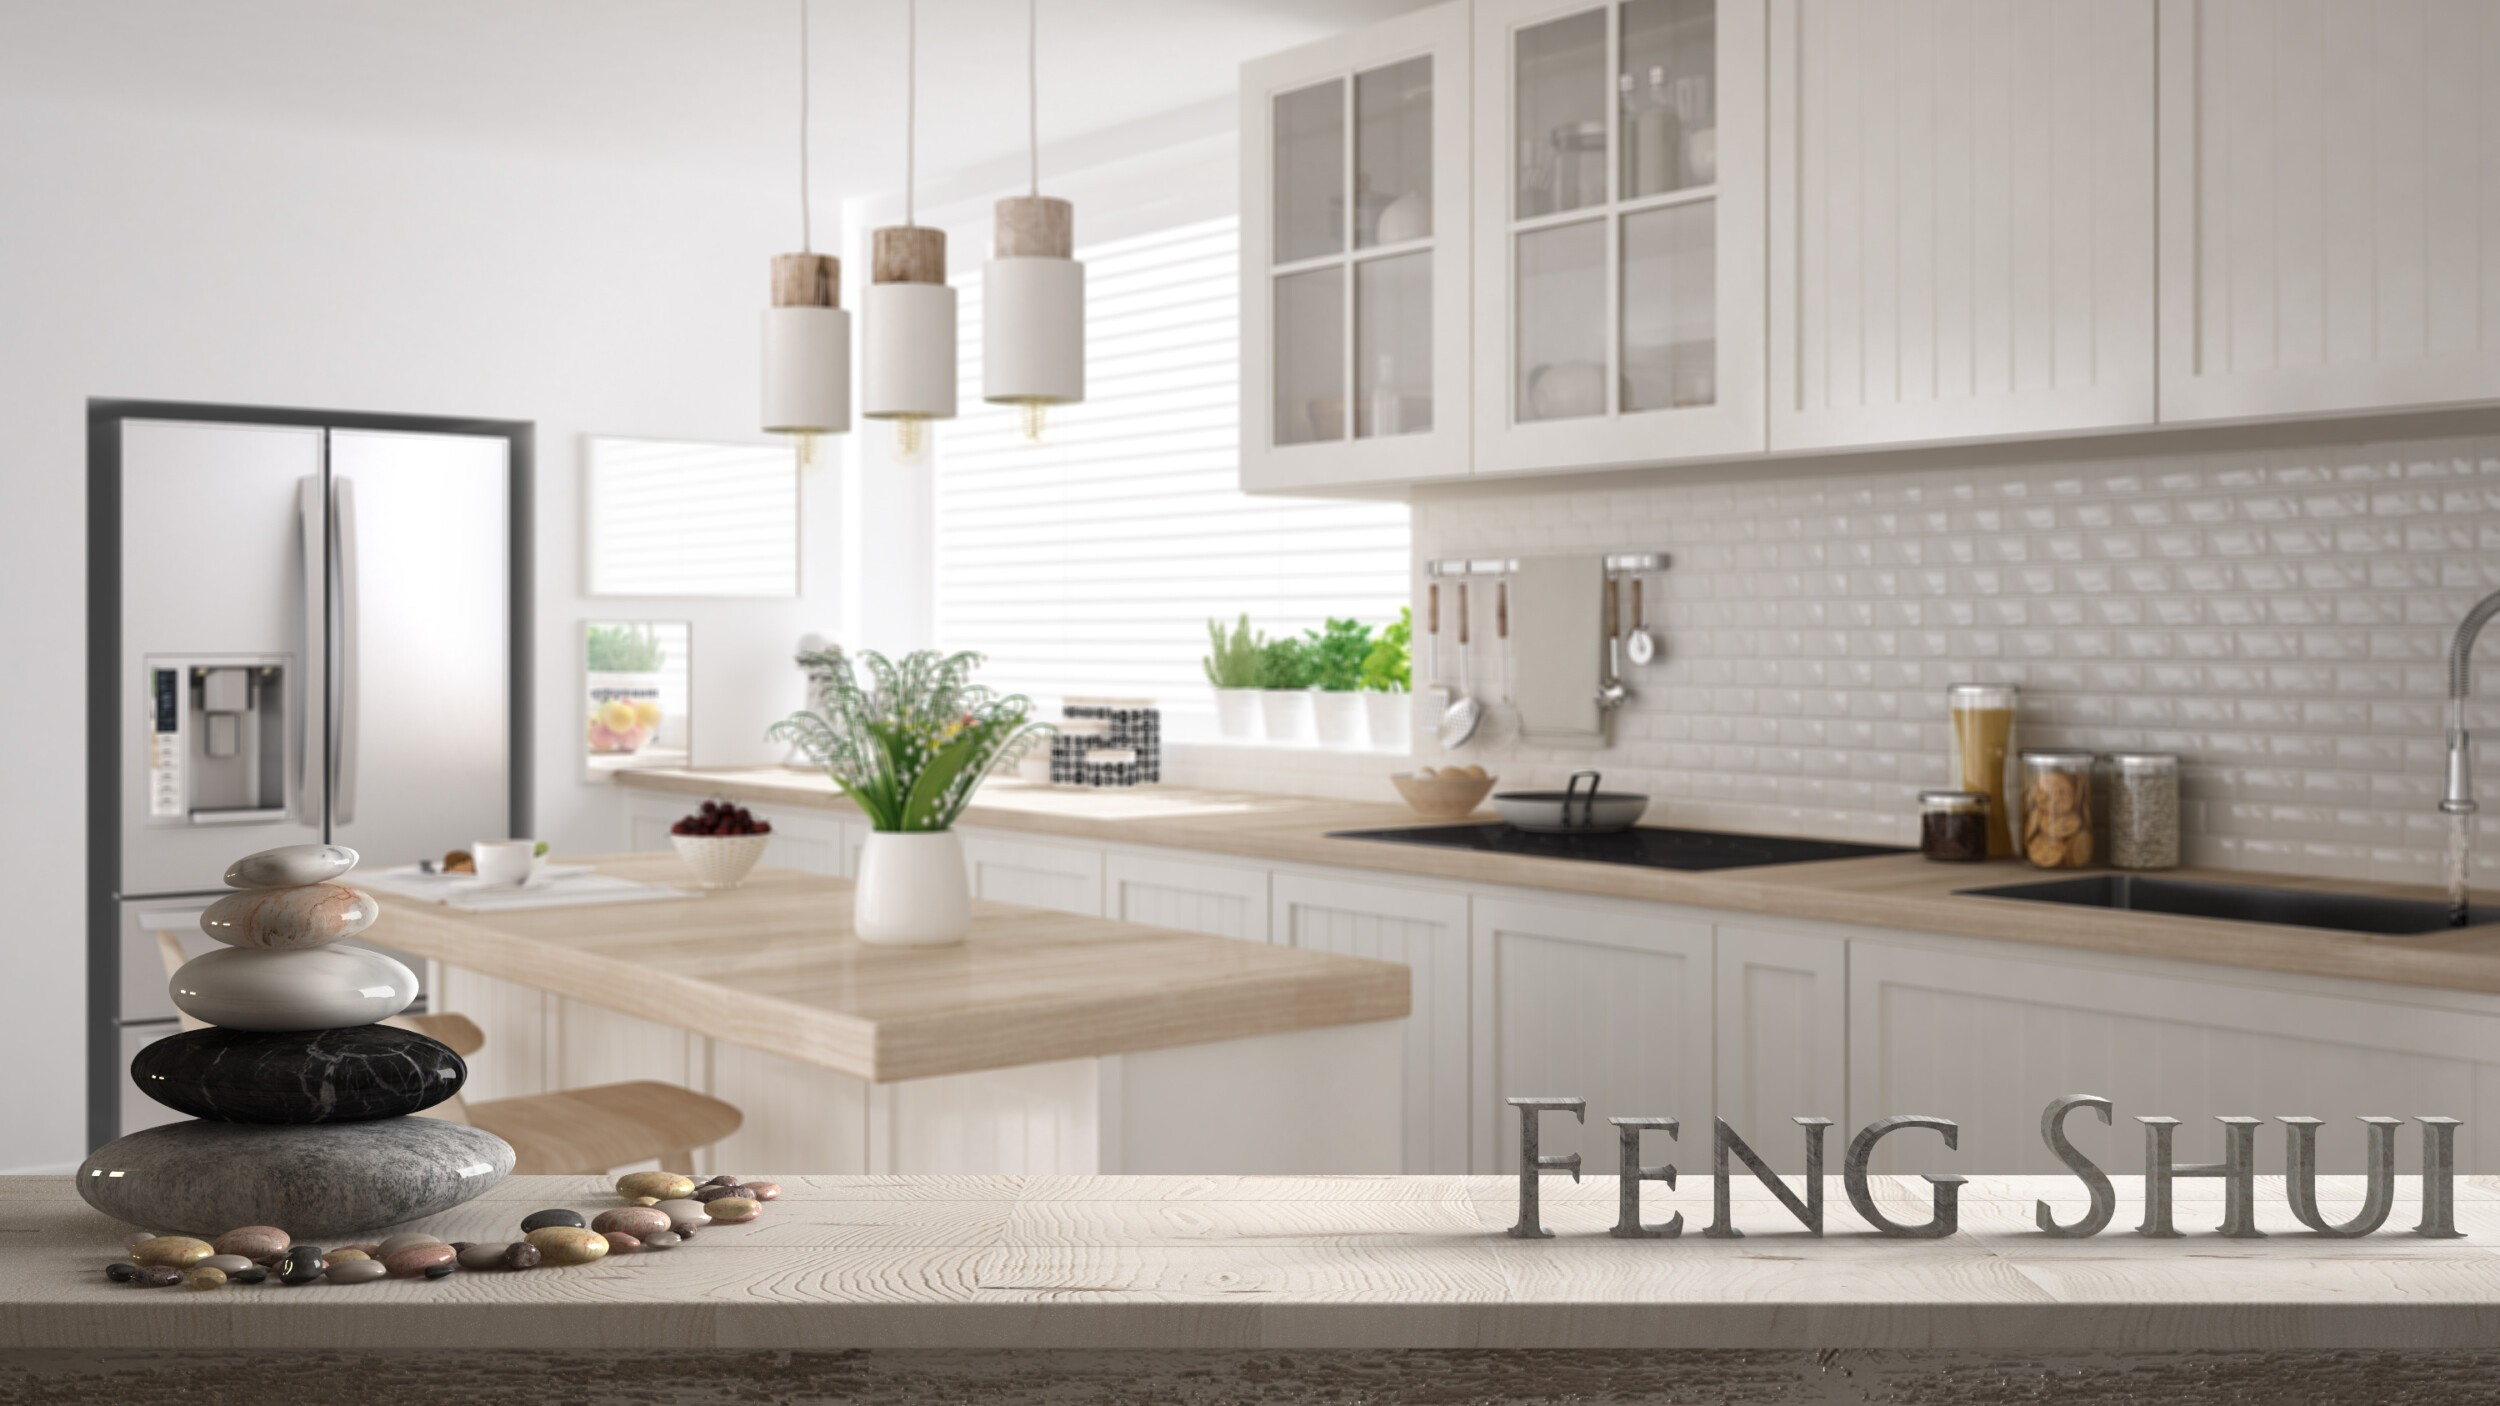 Feng shui style guide